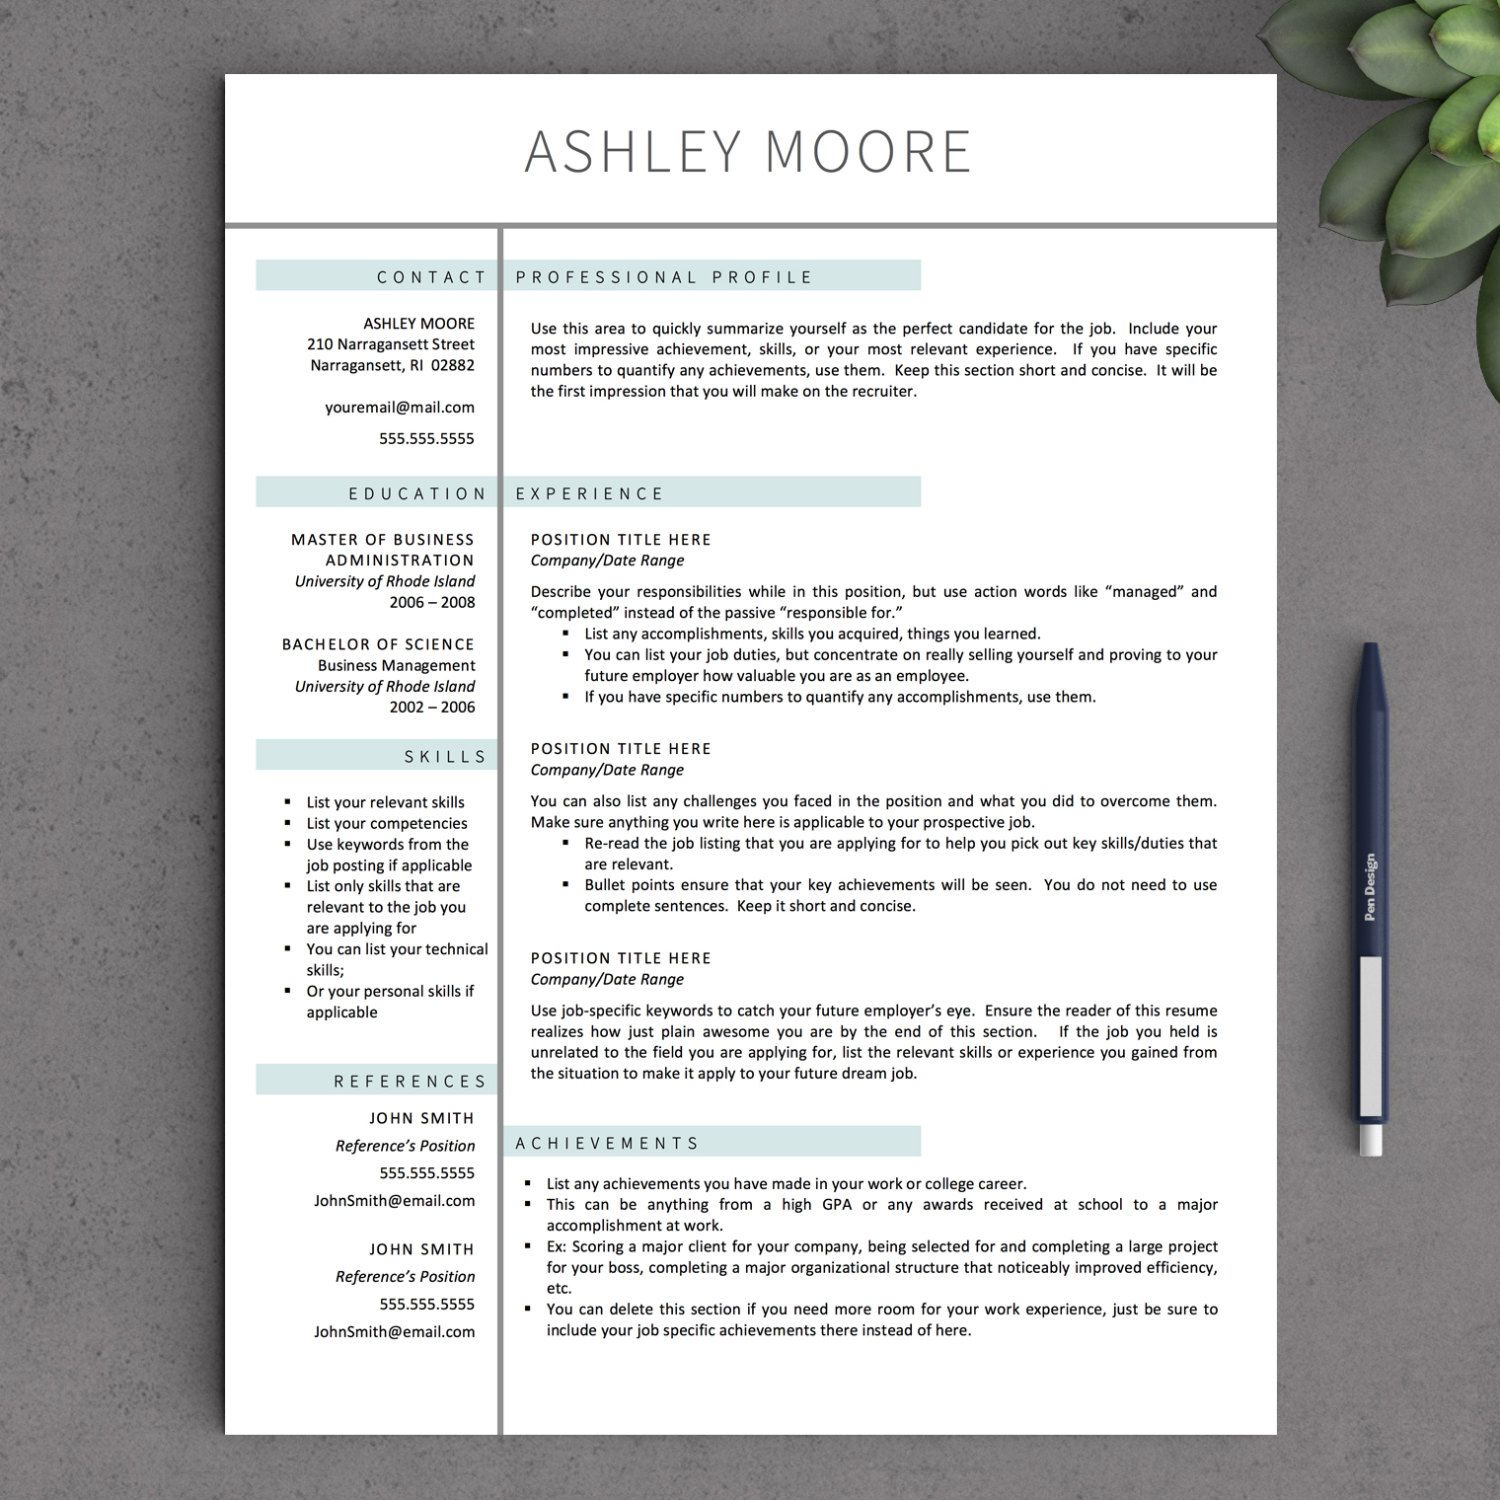 Perfect Apple Pages Resume Template Download Apple Pages Resume Template Download,  Appleu2026 Regard To Pages Resume Templates Free